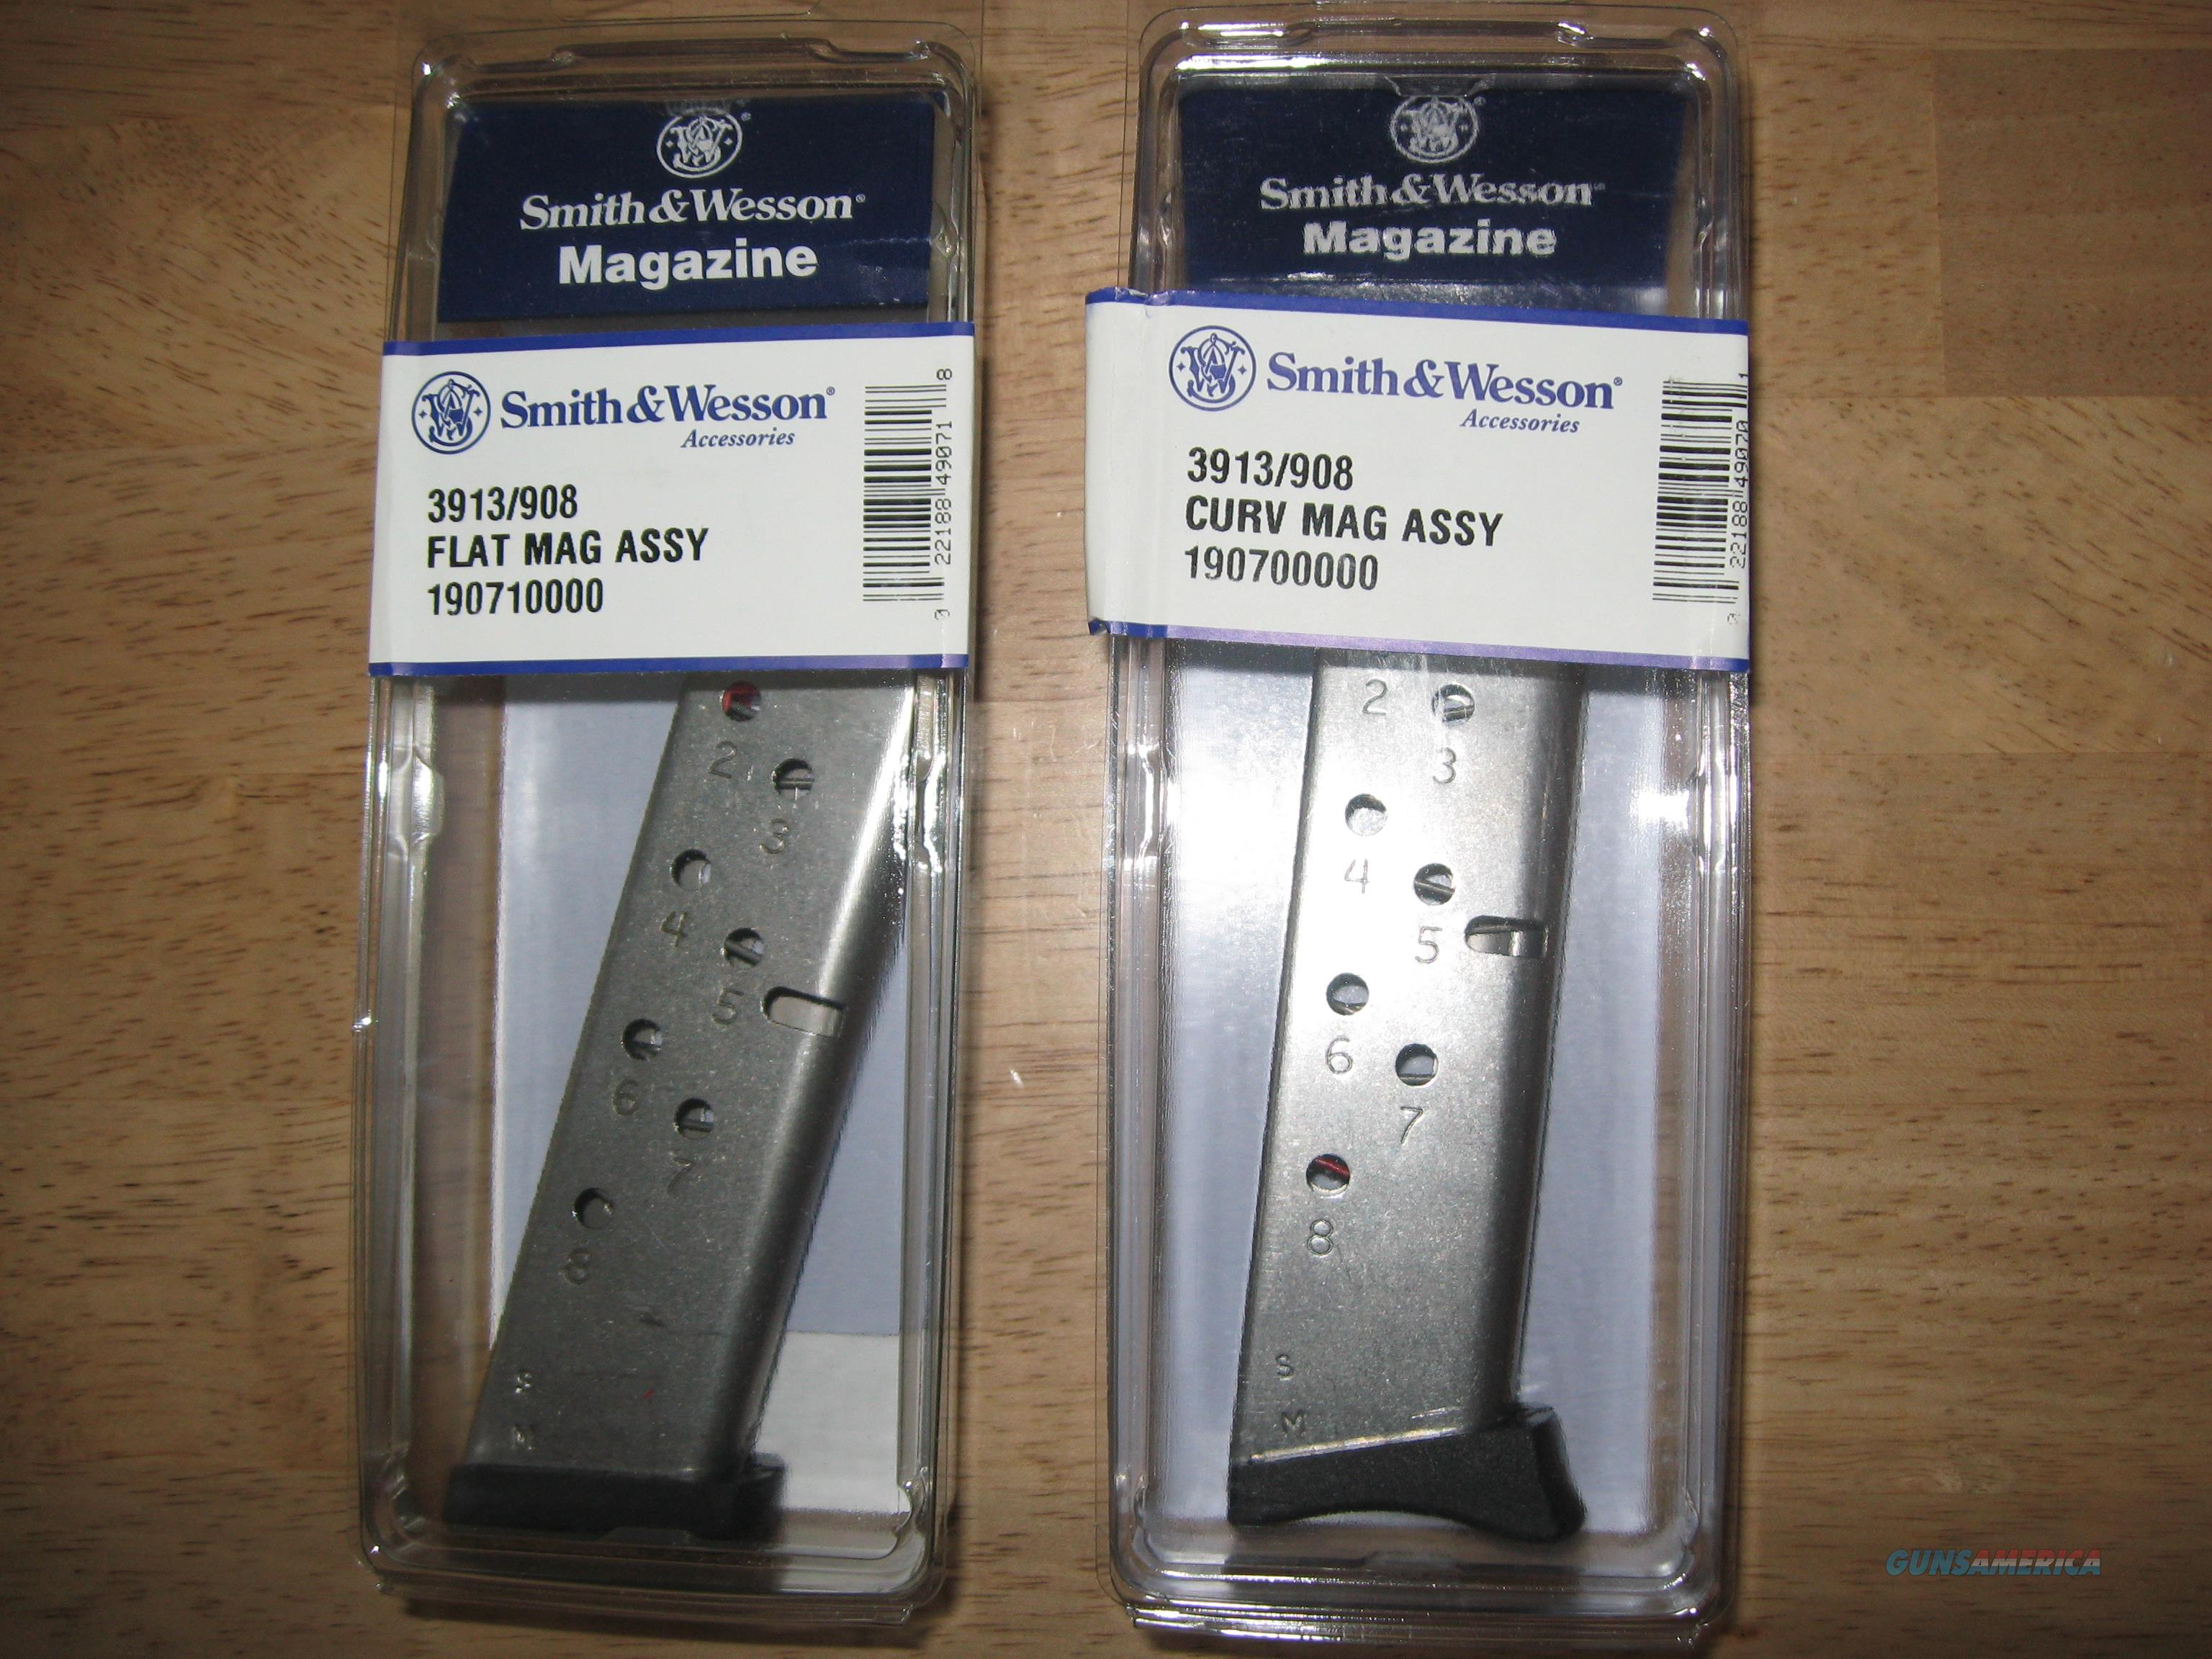 Smith & Wesson 3913/908 9mm 8 Round Mags - New    Non-Guns > Magazines & Clips > Pistol Magazines > Smith & Wesson